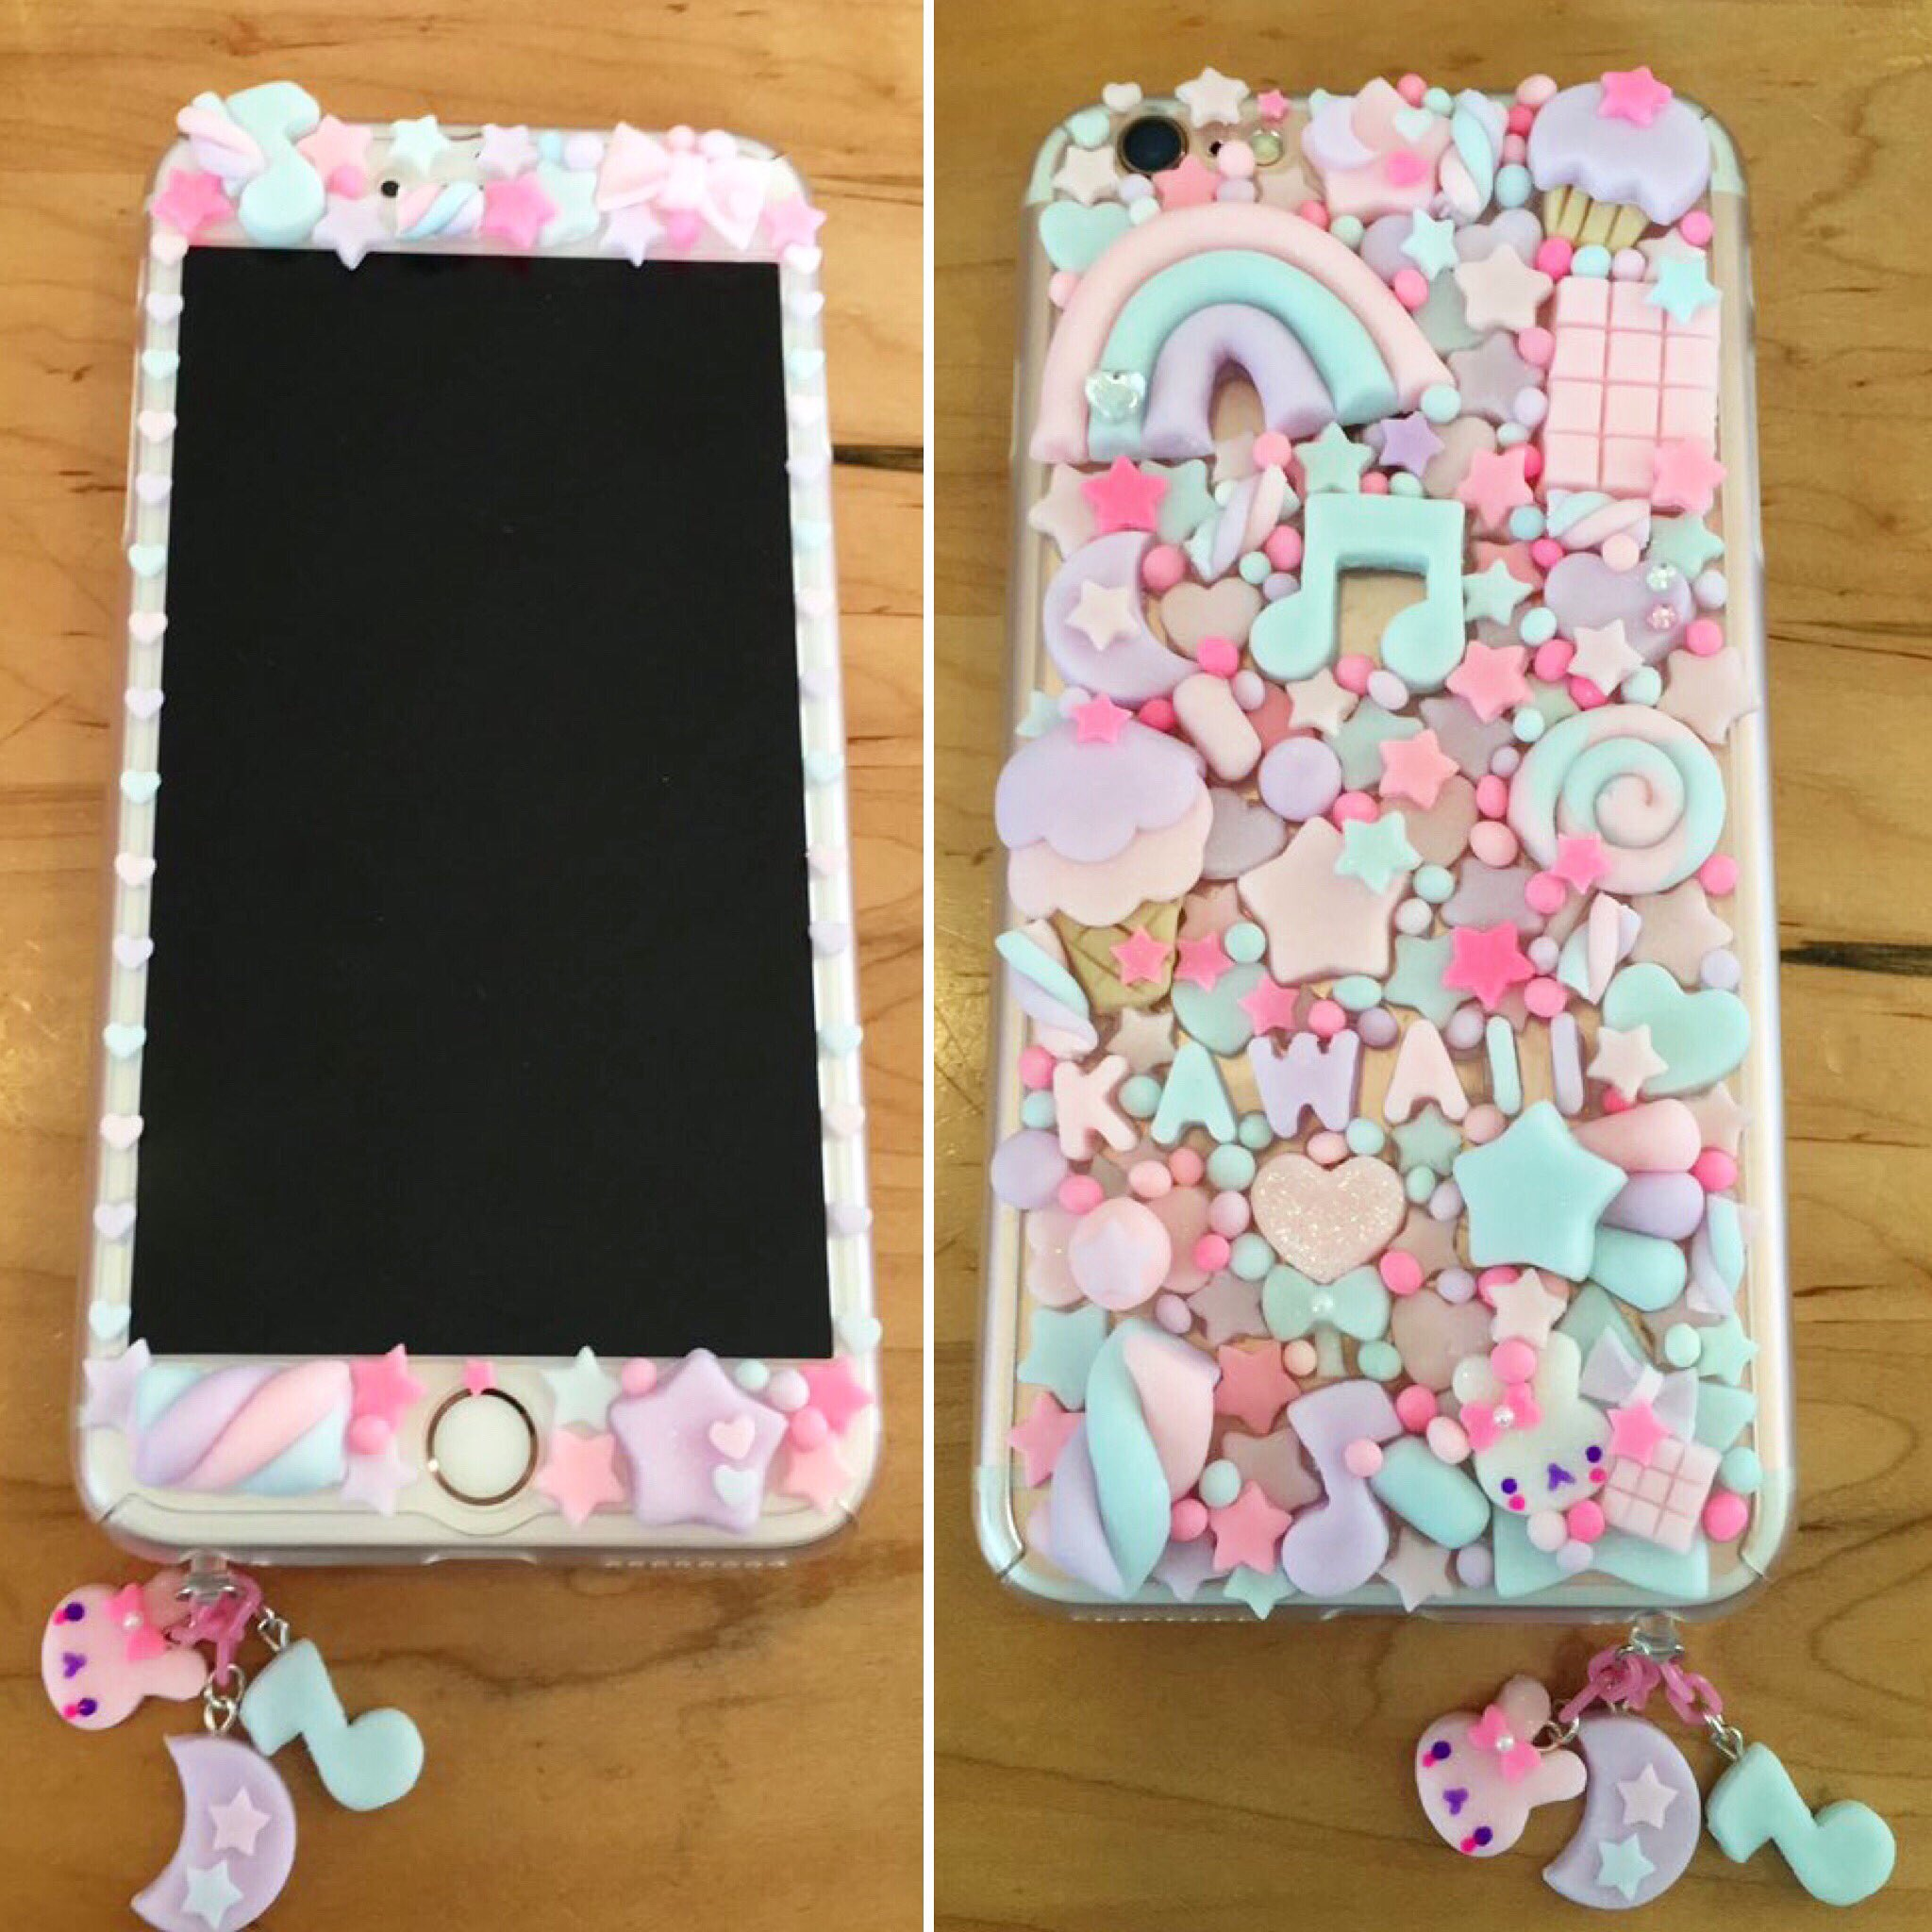 Aphmau On Twitter Quot My New Case From Cialikawaiiland She